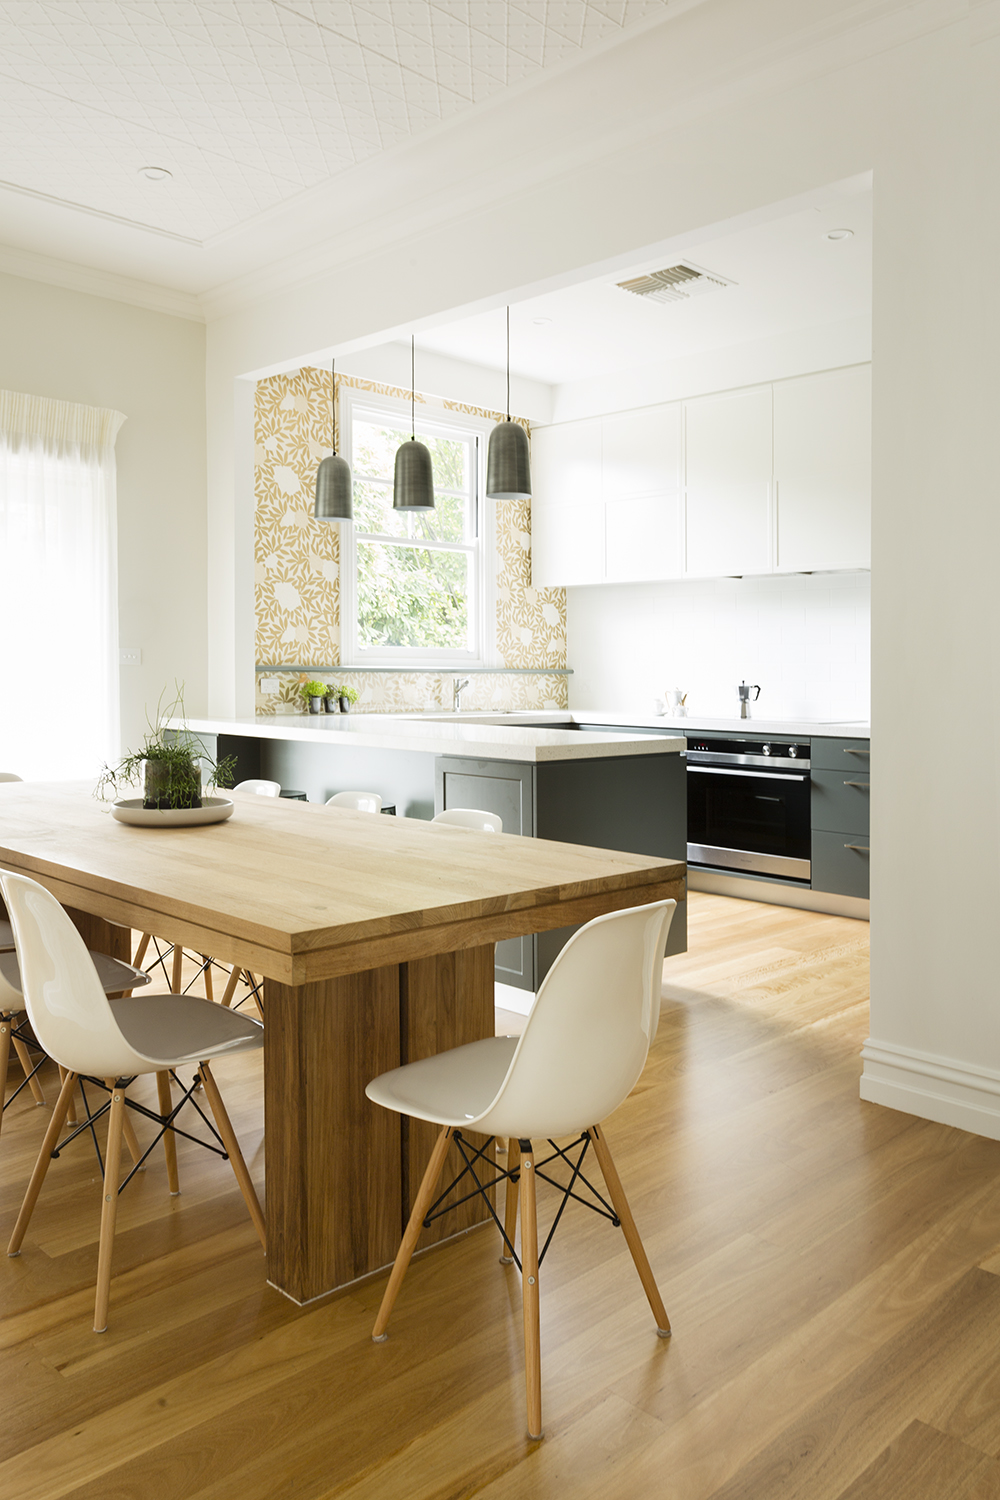 Croydon kitchen renovation by kitchen designer and interior designer Melbourne